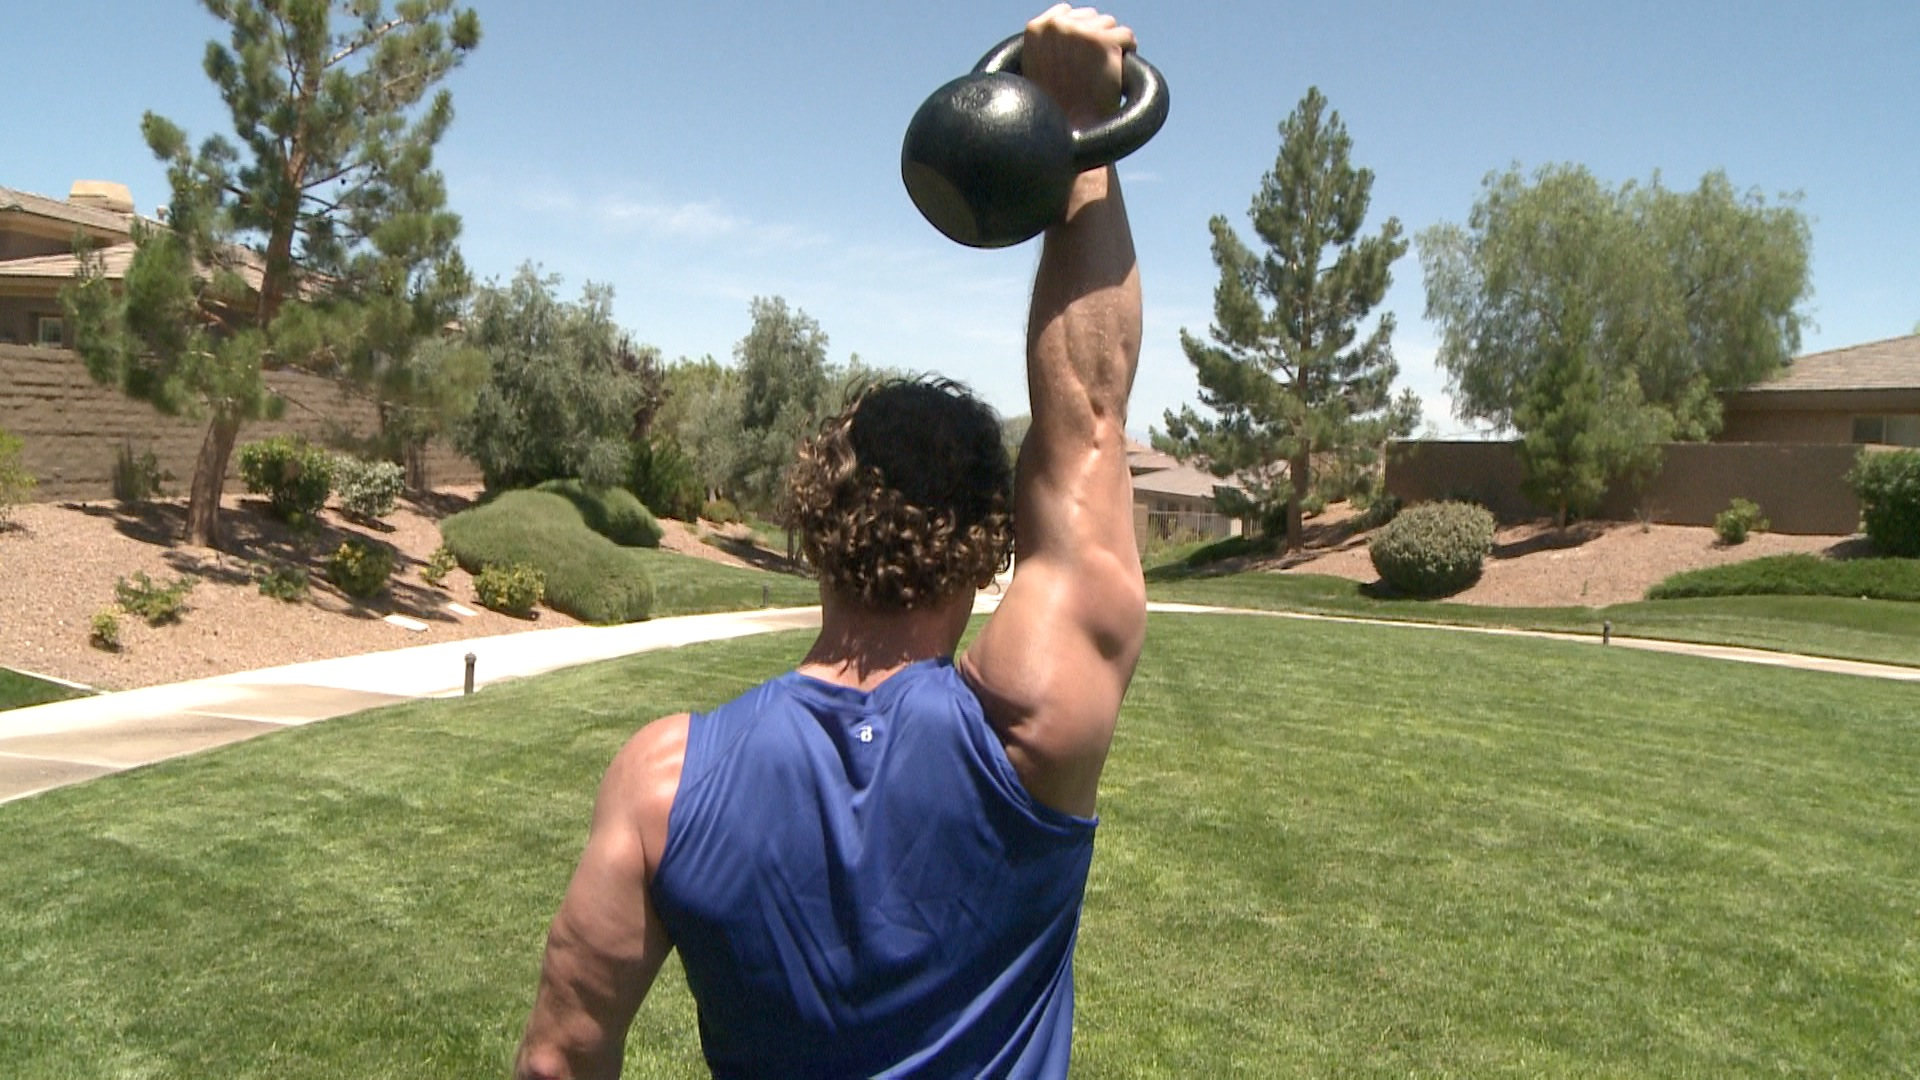 ATAC TV Why train with Kettlebells